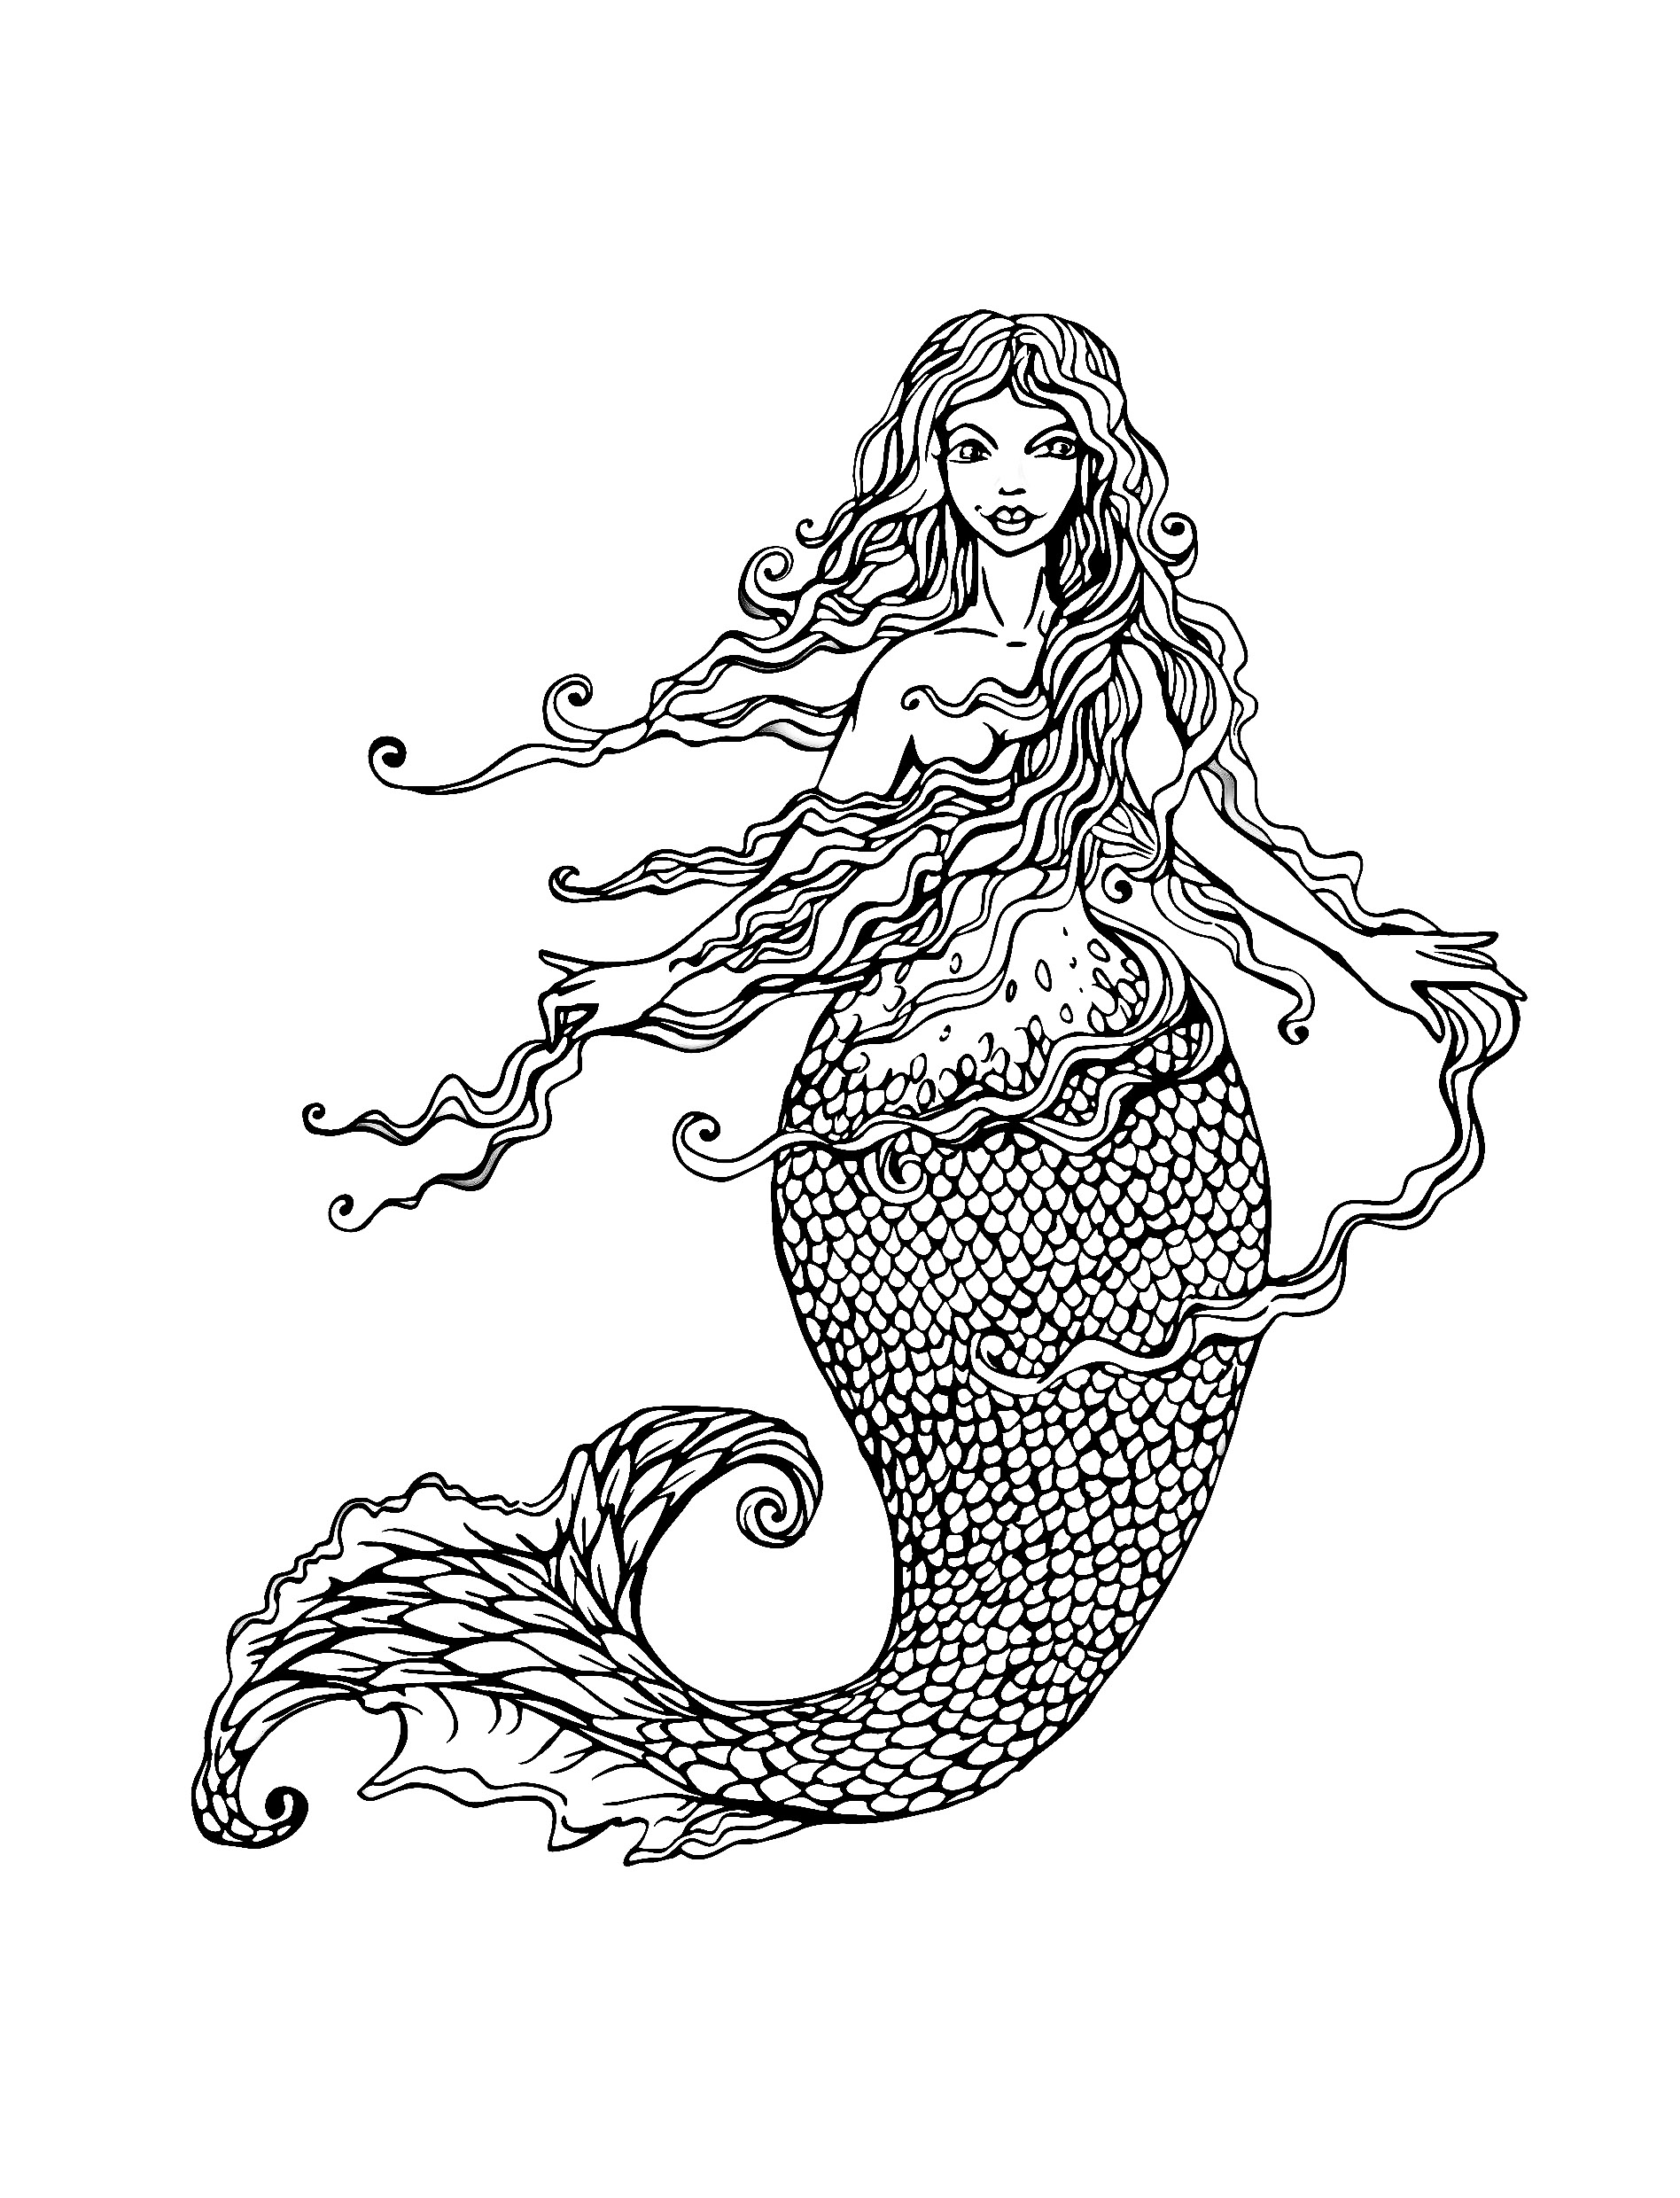 mermaid adult coloring pages Mermaid with long hair   Mermaids Adult Coloring Pages mermaid adult coloring pages